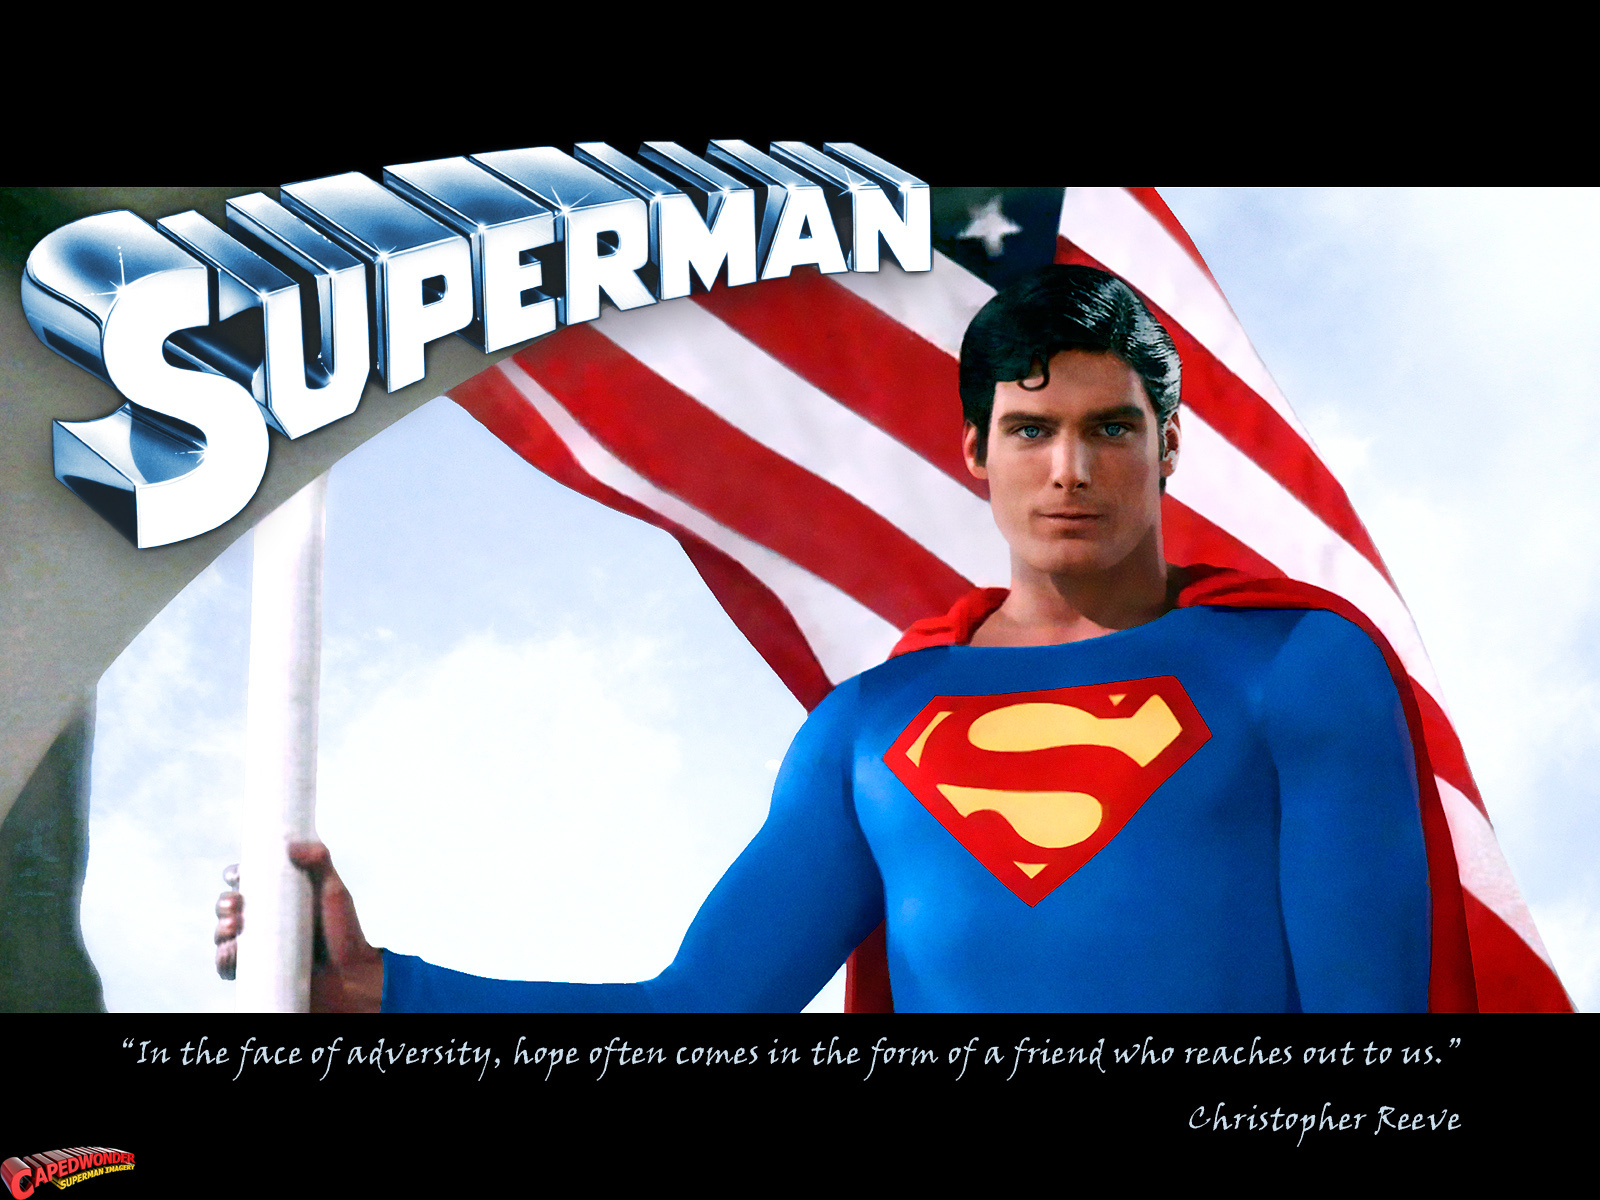 christopher reeve superman movie